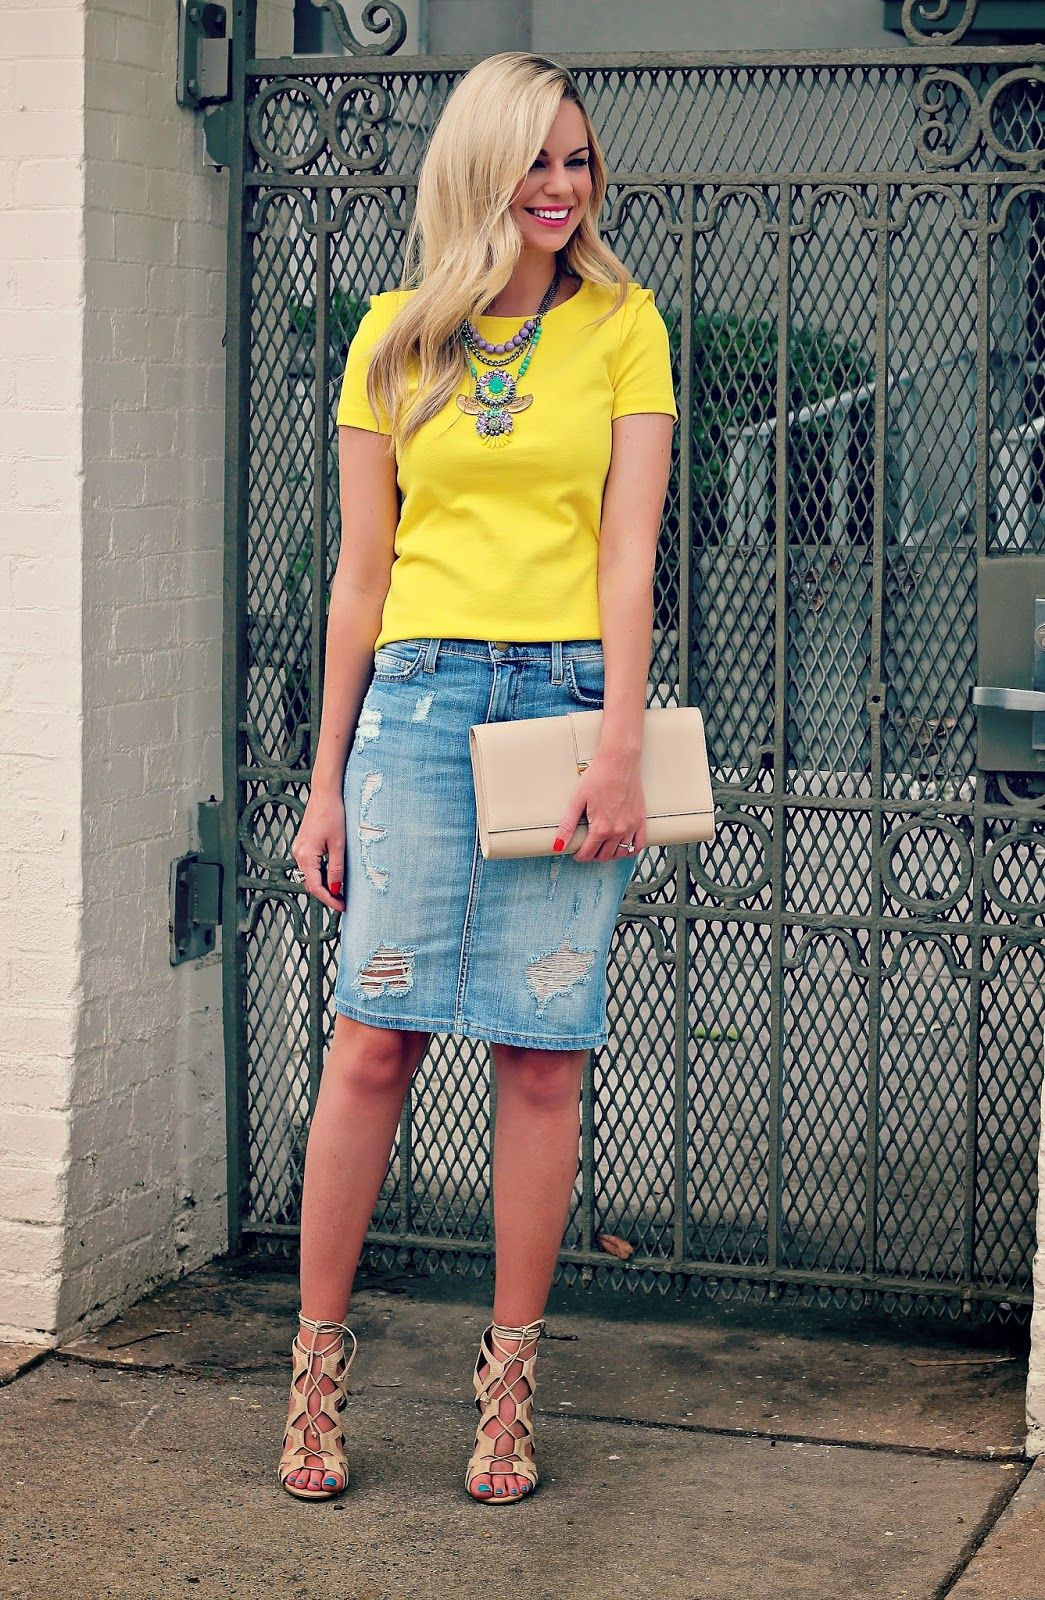 373a15795 Bows and Depos: The Lighter Side - distressed denim skirt, bright ...